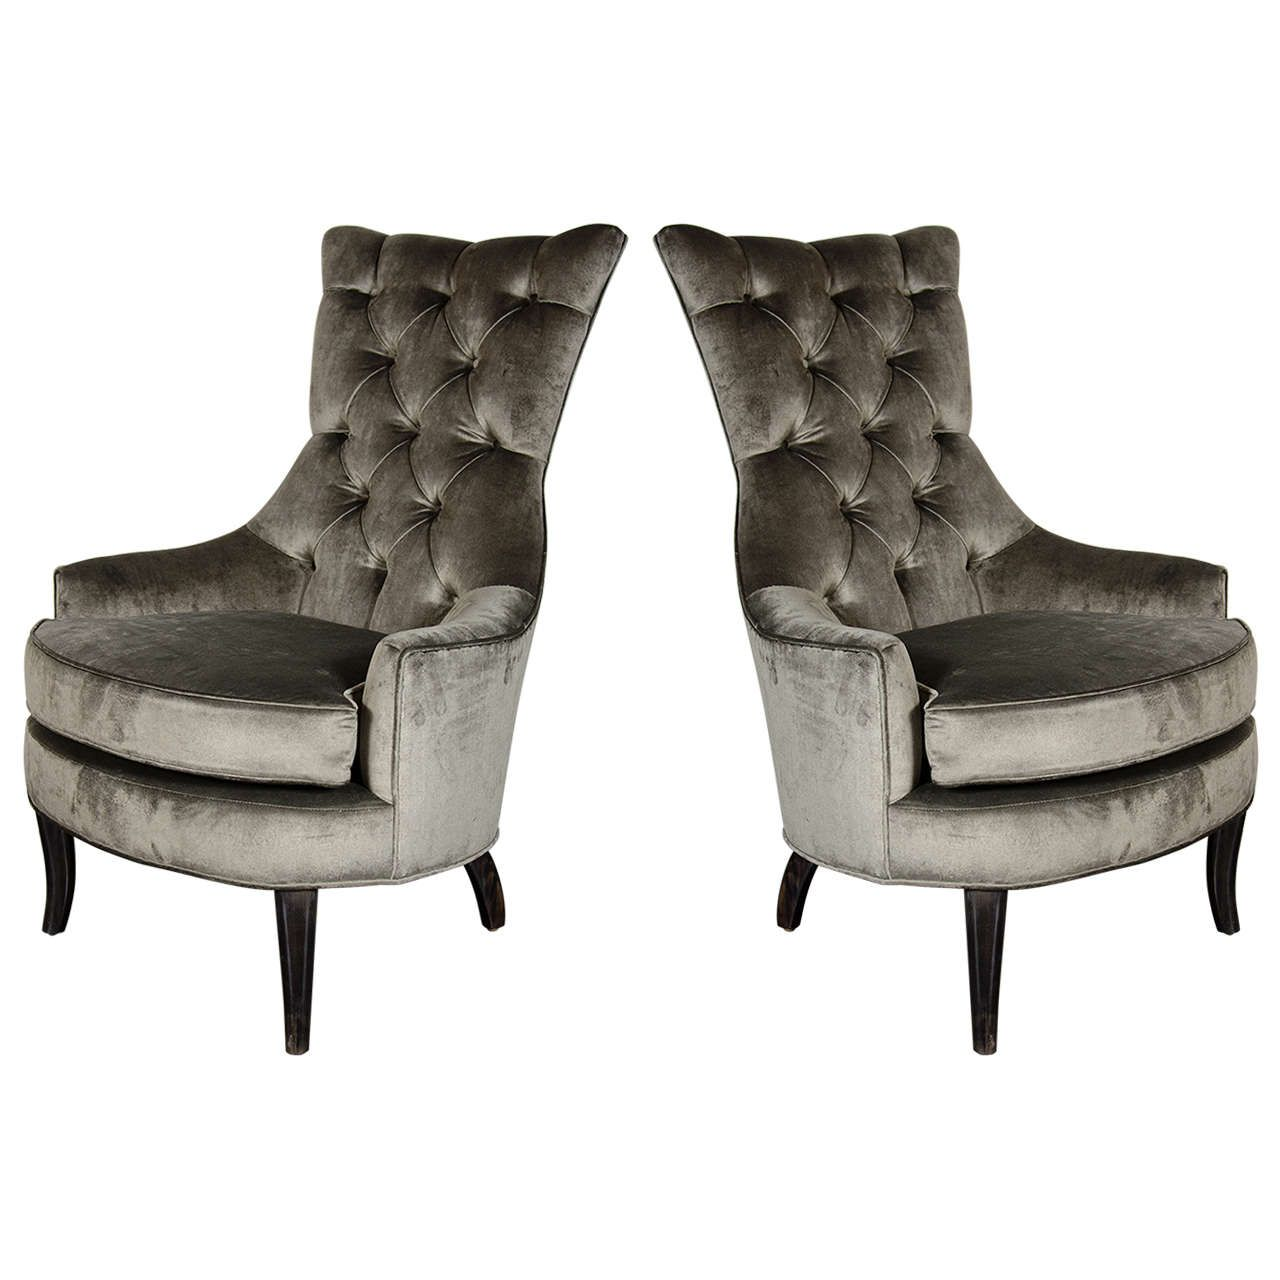 Pair Of Mid Century Modern Tufted High Back Chairs In Smoked Platinum Velvet